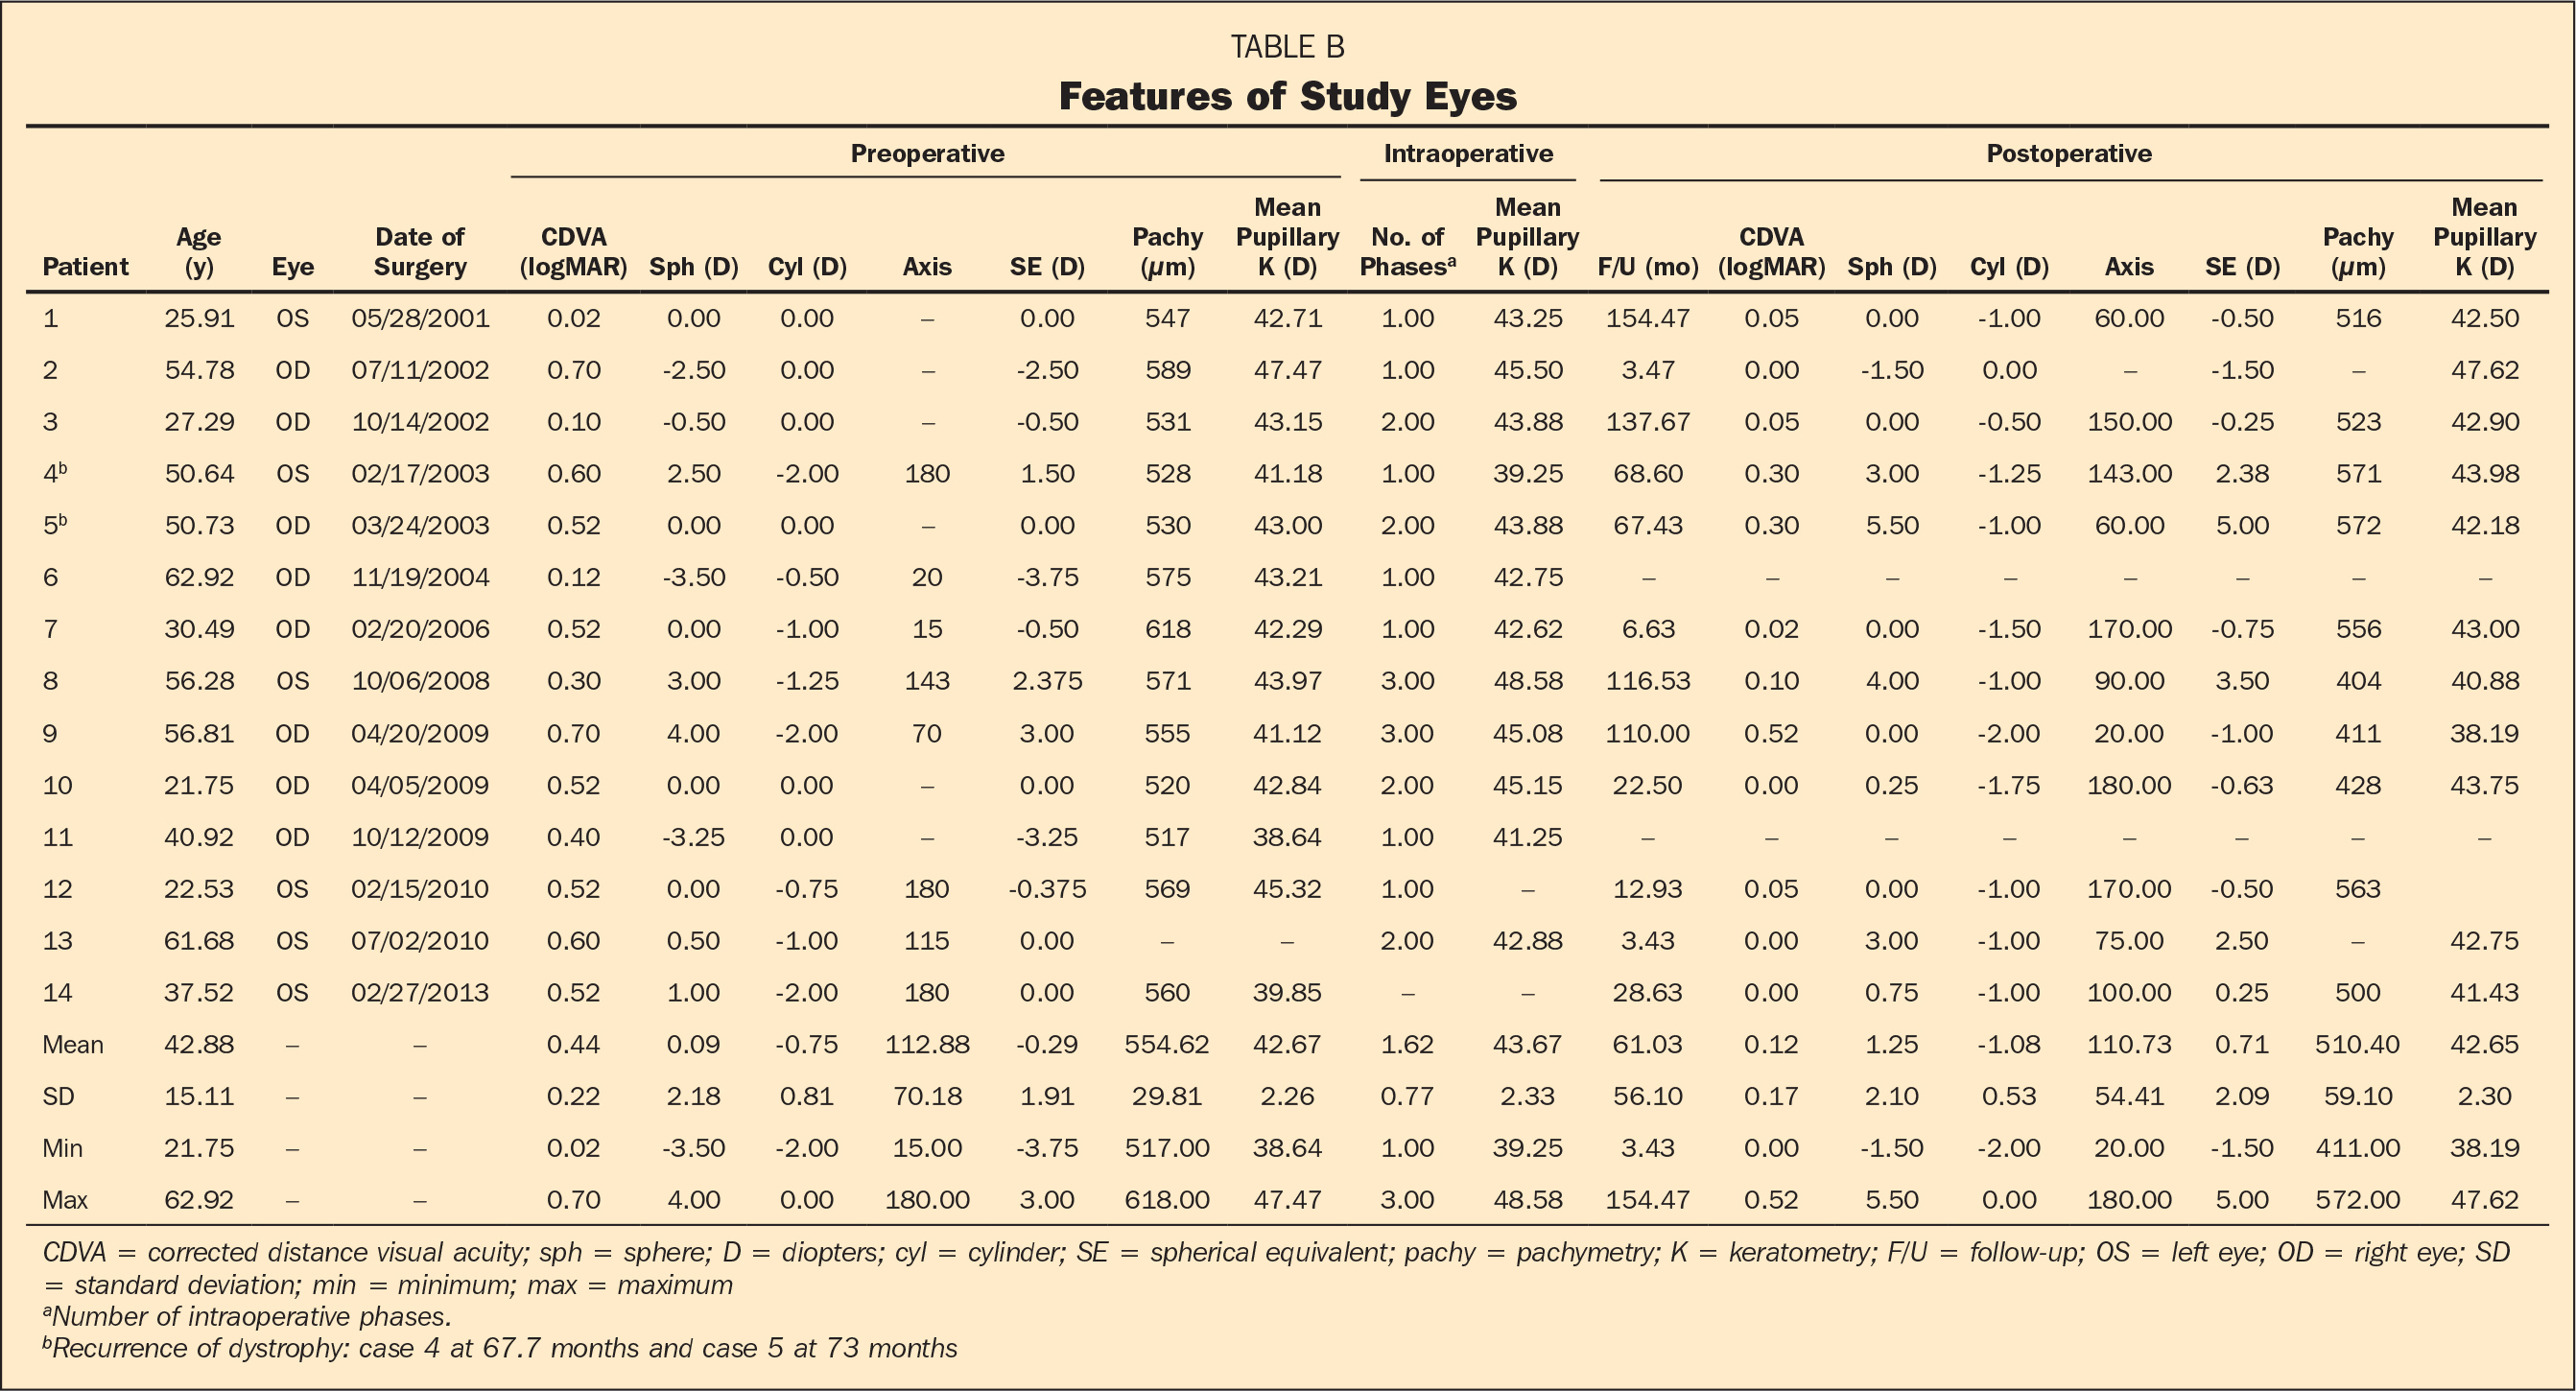 Features of Study Eyes